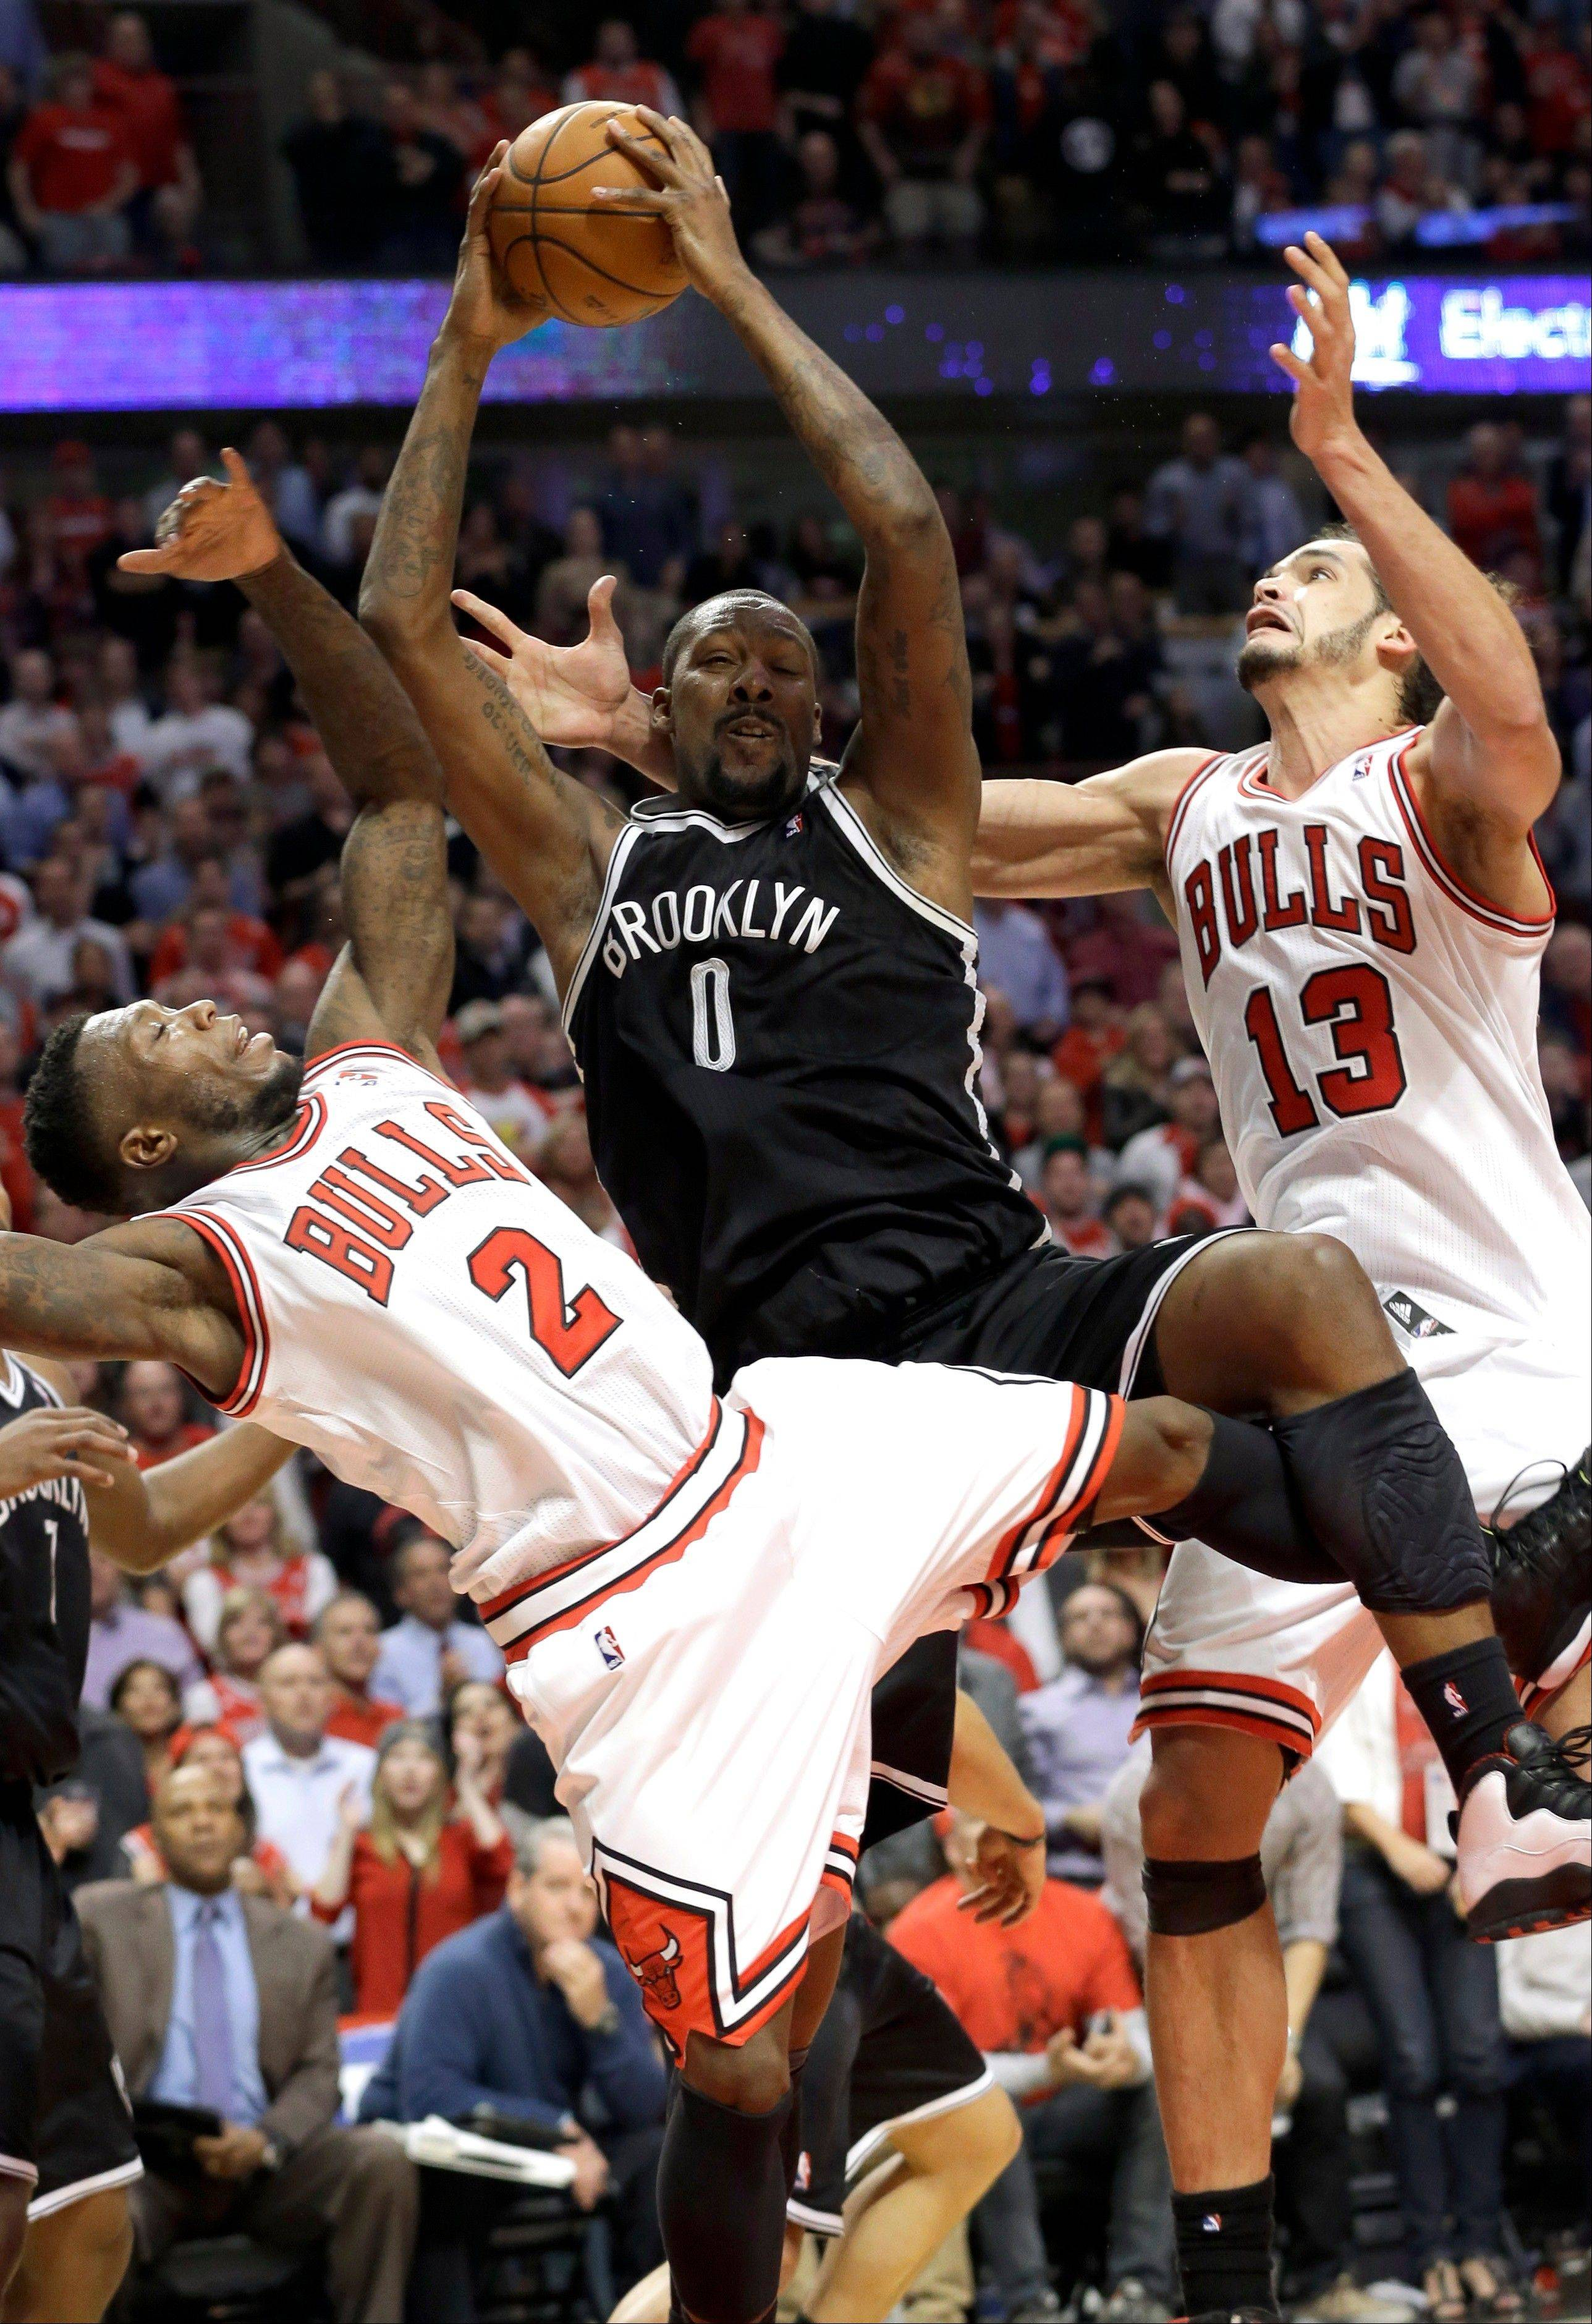 Nets forward Andray Blatche rebounds the ball between the Bulls' Nate Robinson (2) and center Joakim Noah during the second half of Game 6 of their first-round playoff series Thursday. Blatche's 2 late free throws gave the Nets a 3-point lead they would not relinquish.